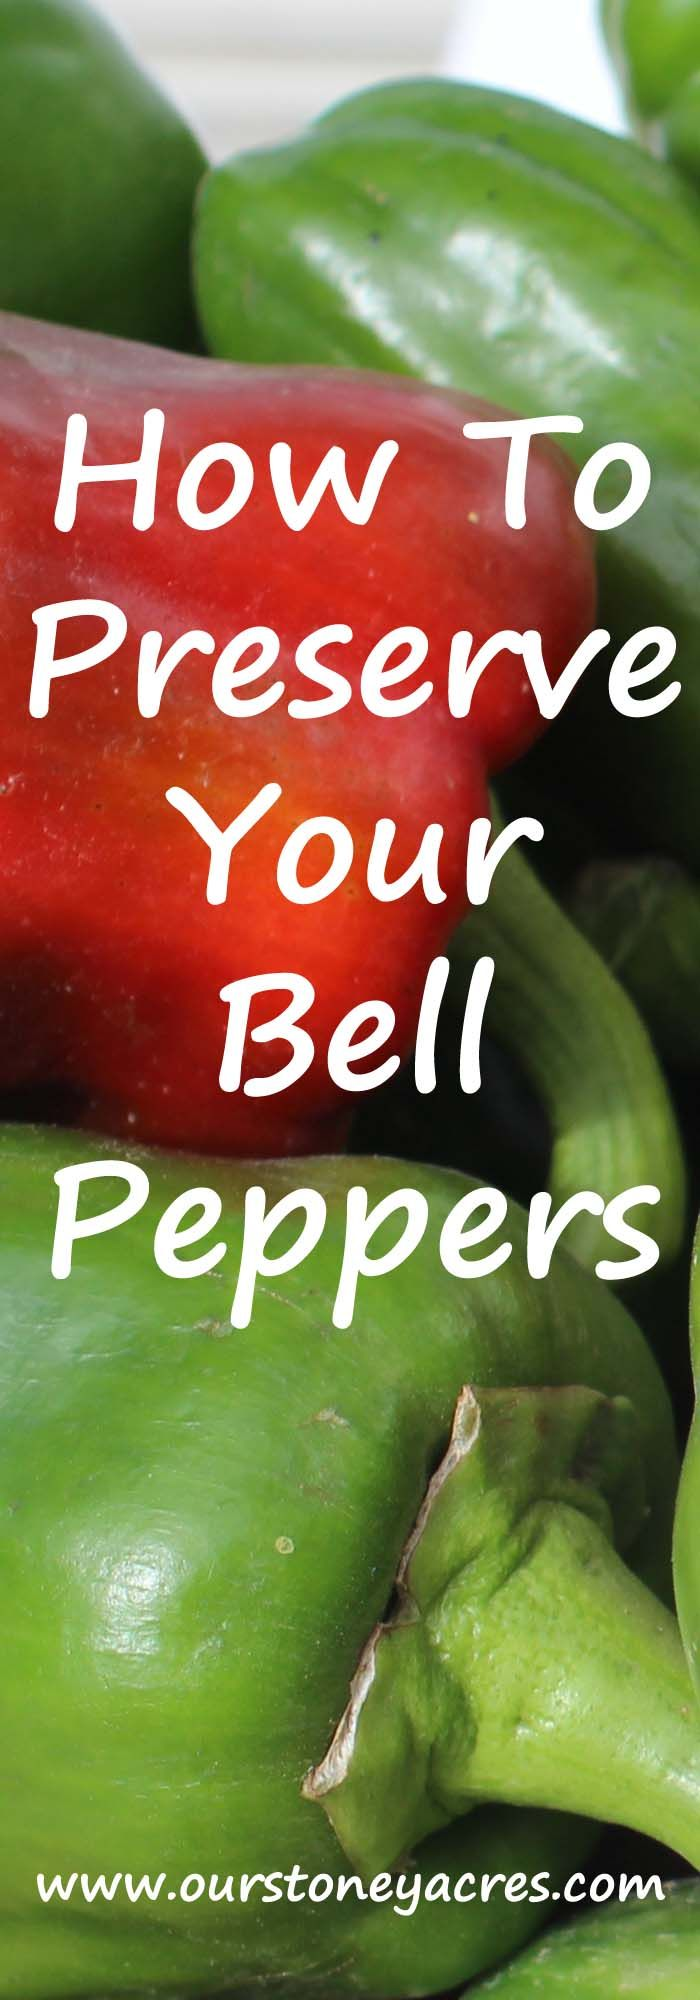 Preserving Bell Peppers - 3 Easy Steps - Our Stoney Acres